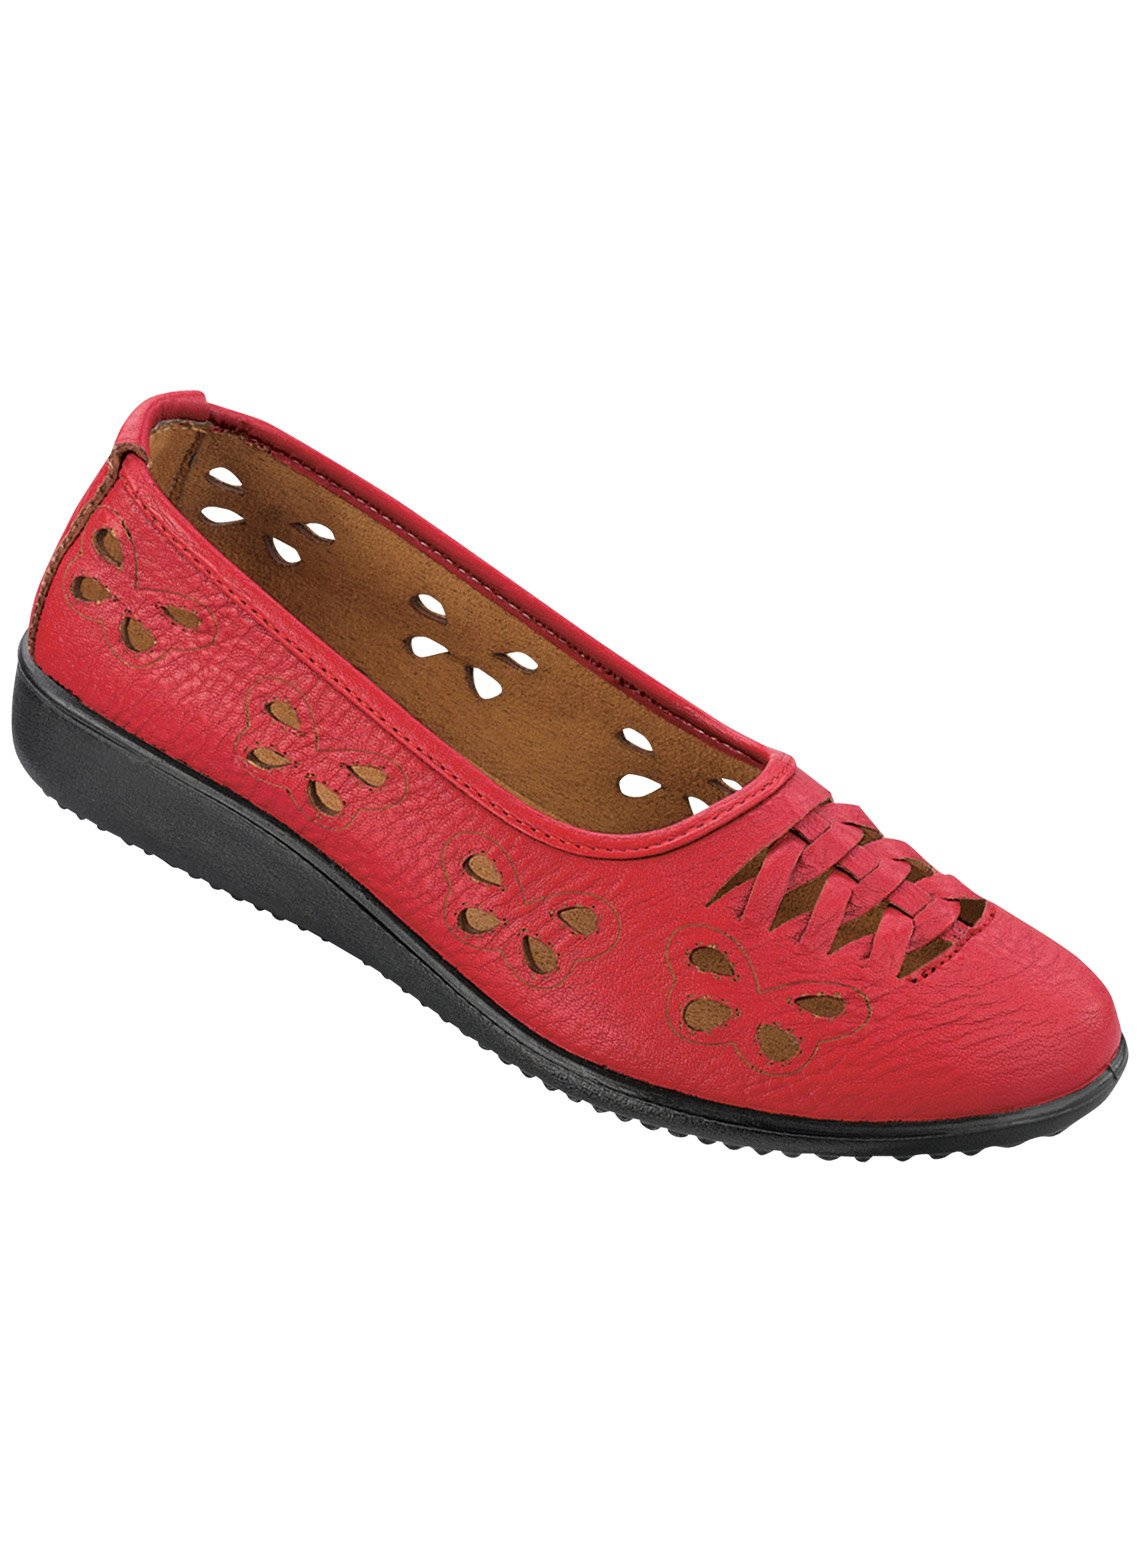 Carol Wright Gifts Butterfly Flats, Red, Size 8 (Extra Wide)